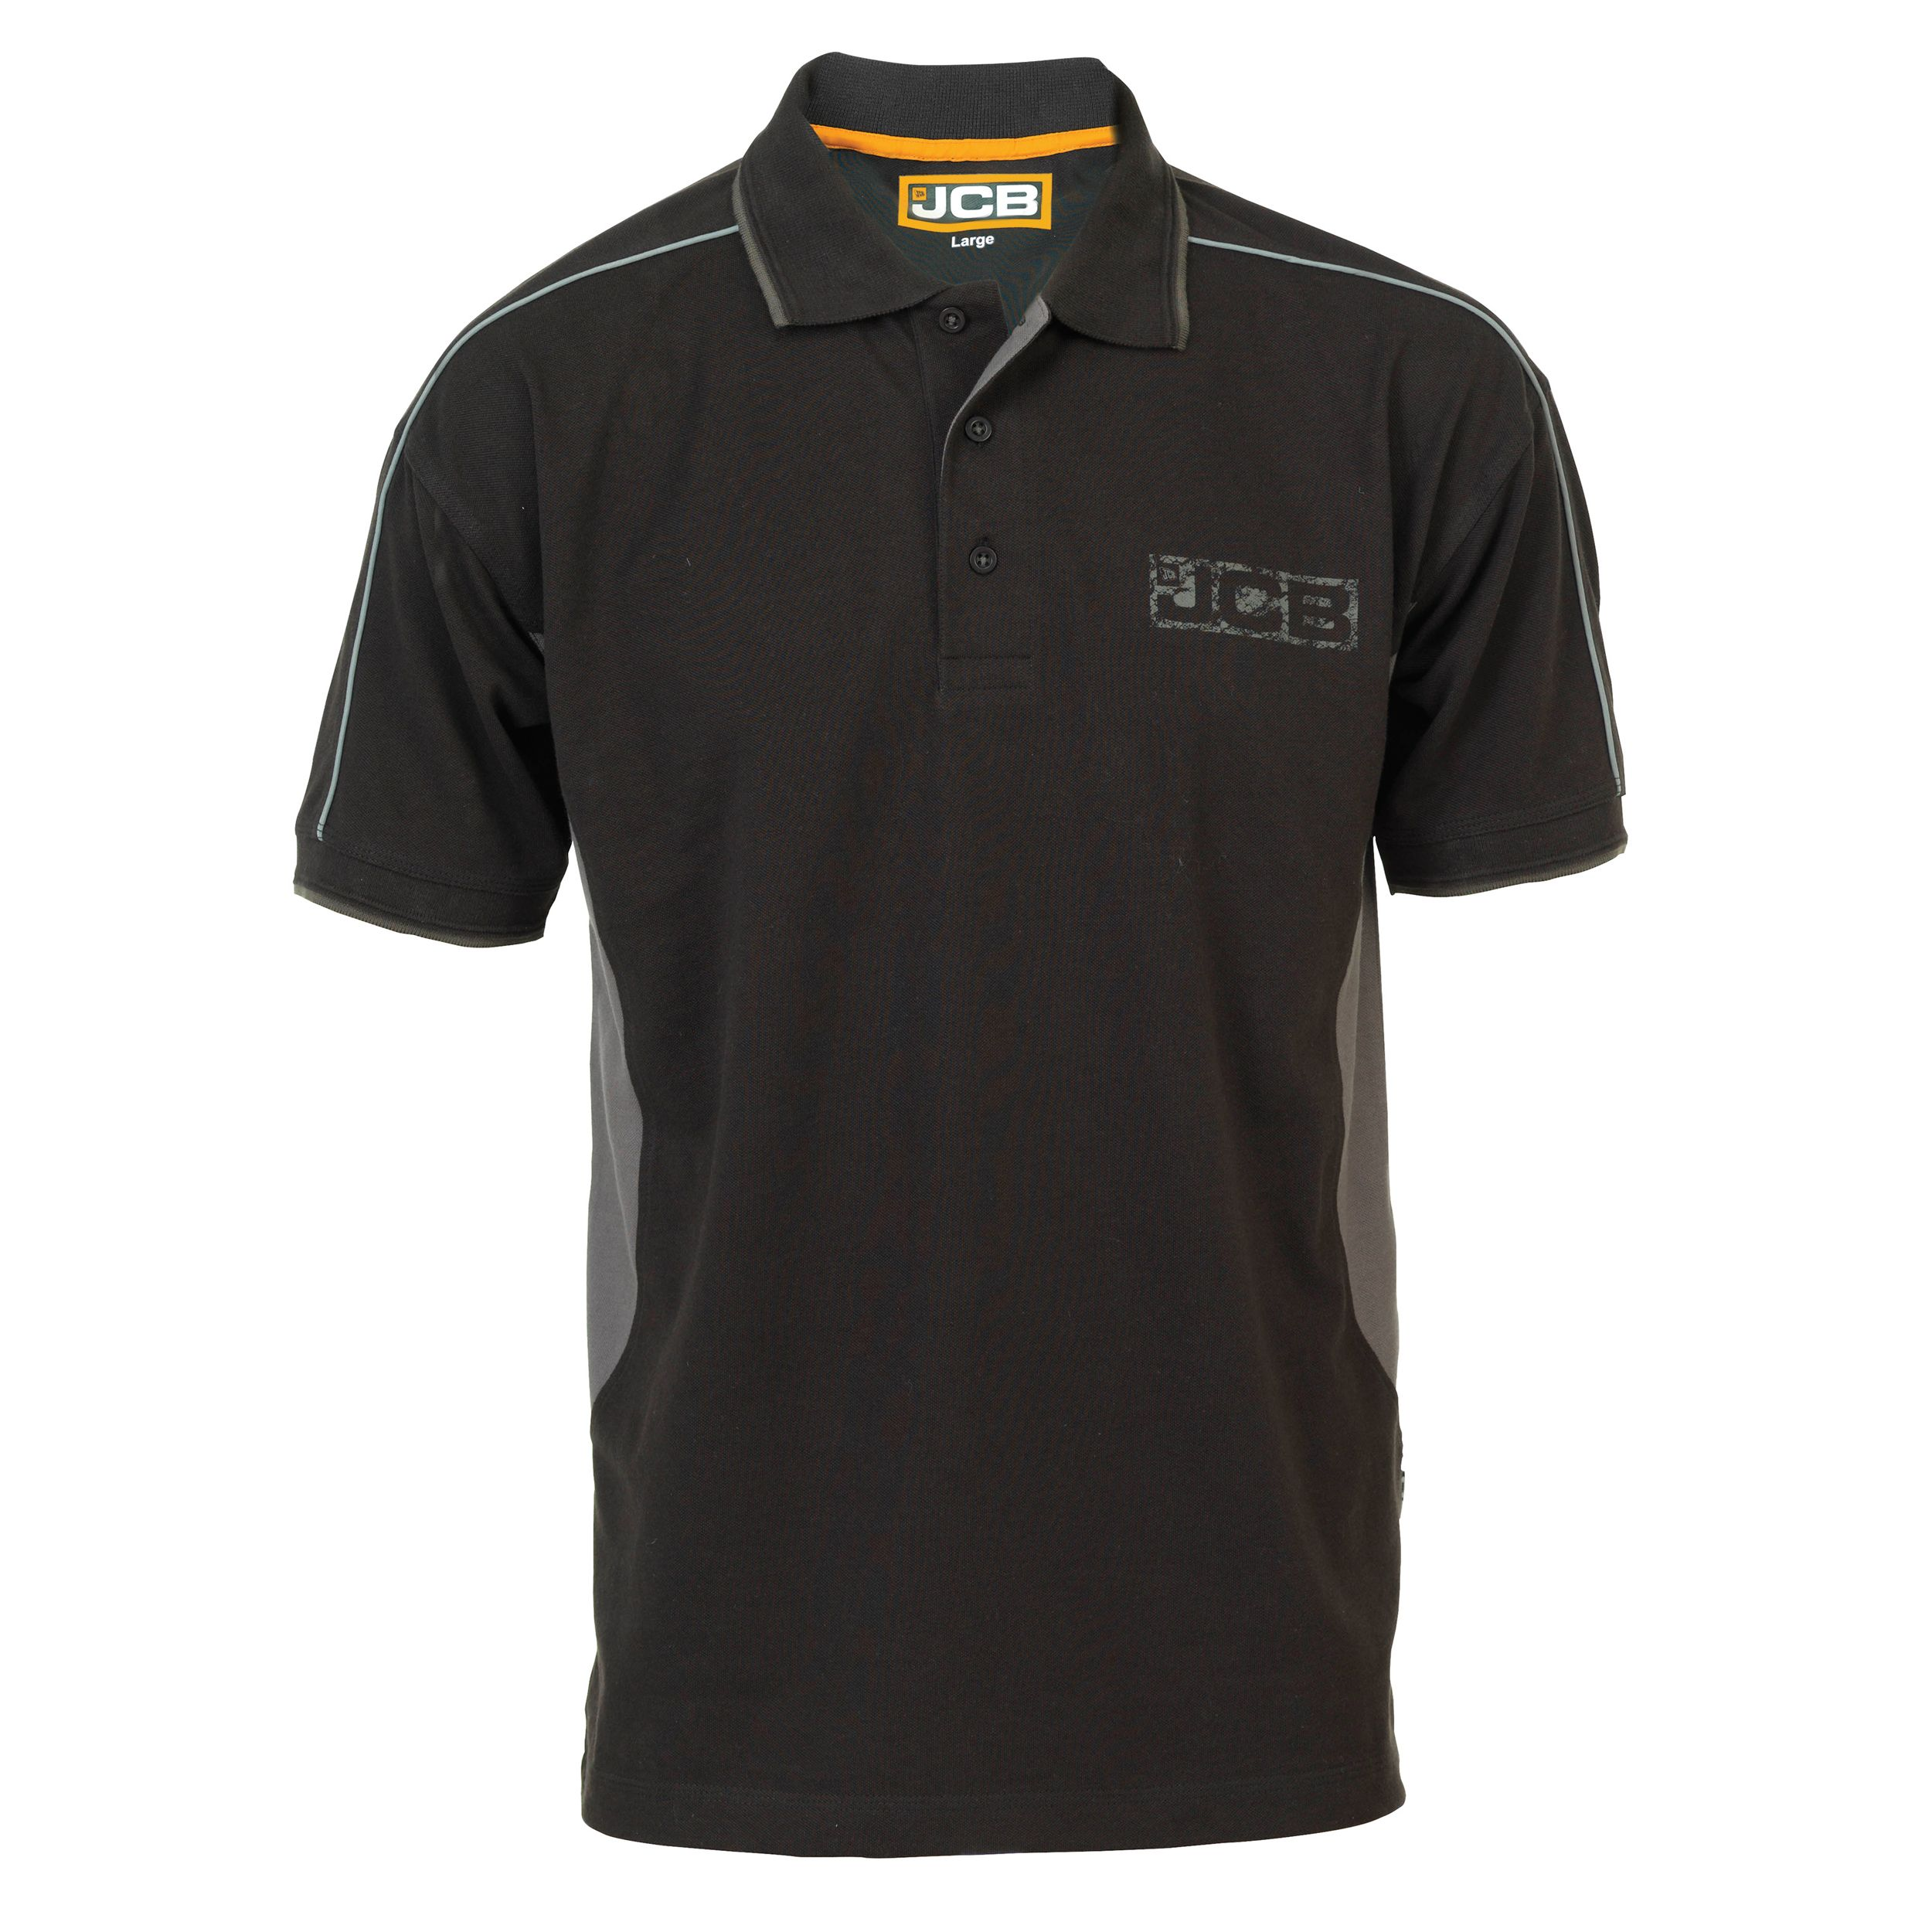 Jcb Black & Grey Fenton Polo Shirt Large